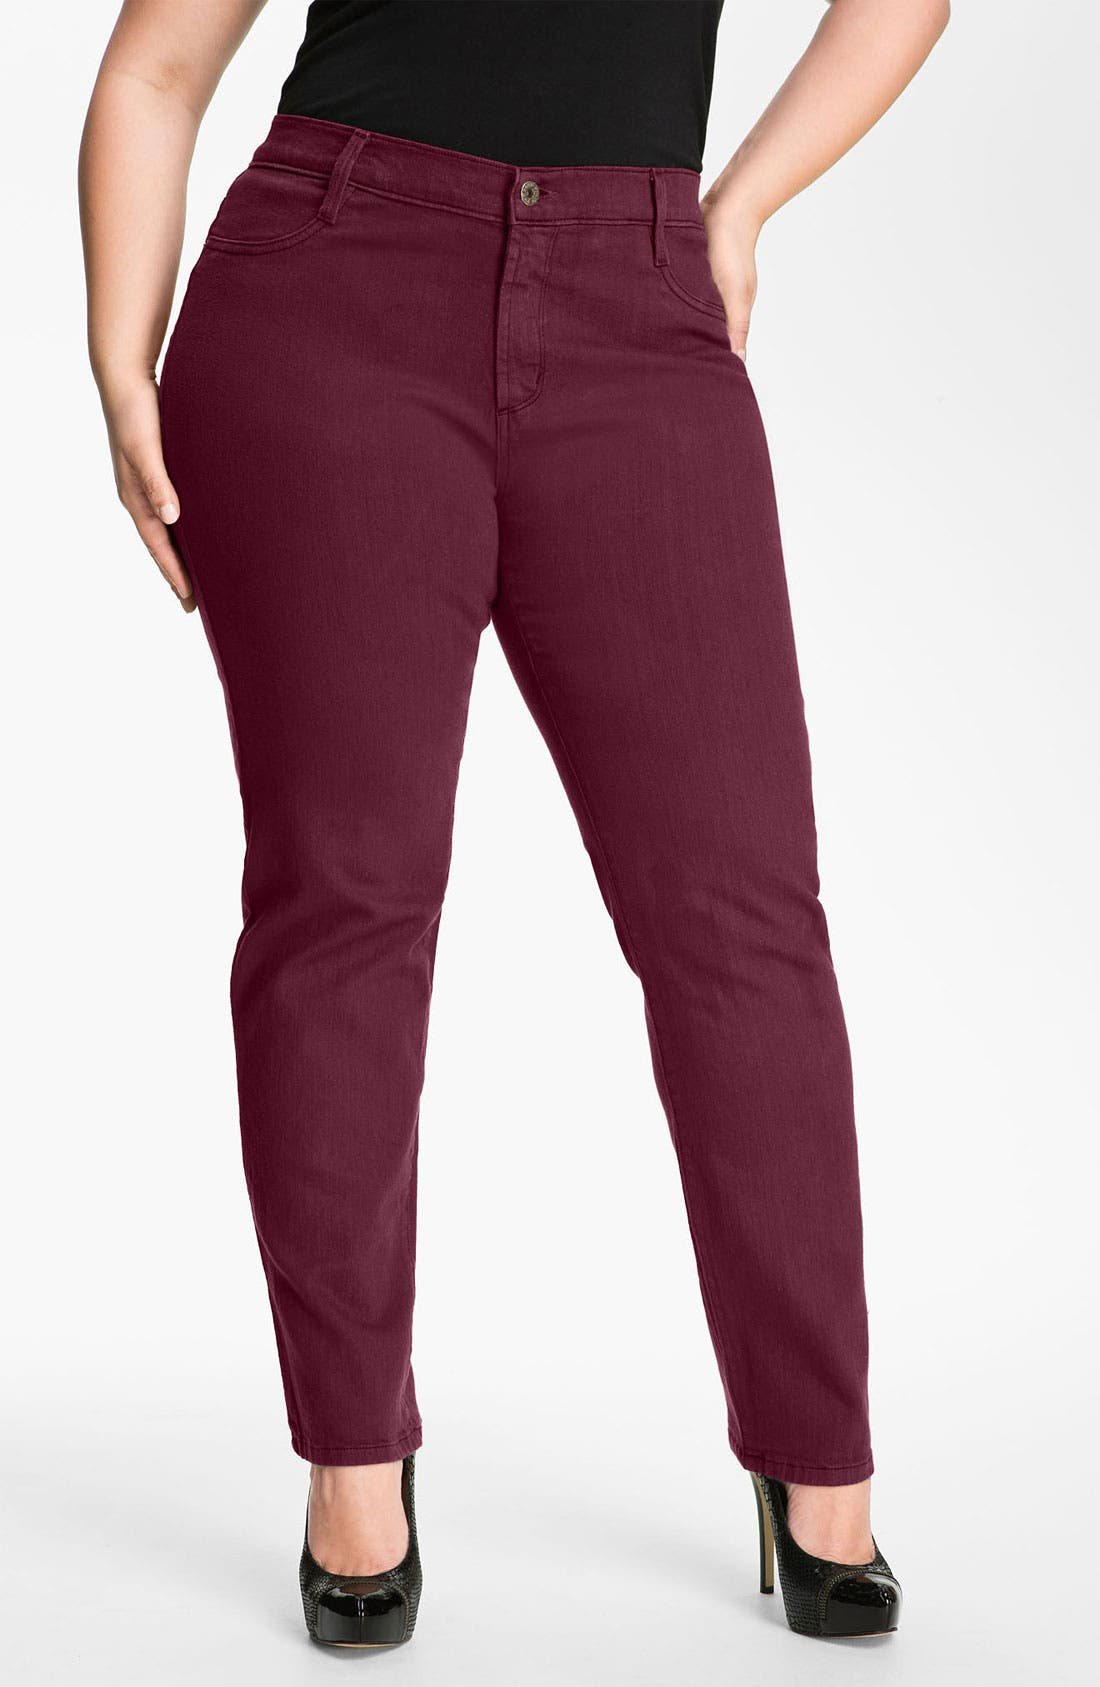 Main Image - James Jeans Stretch Denim Leggings (Plus)